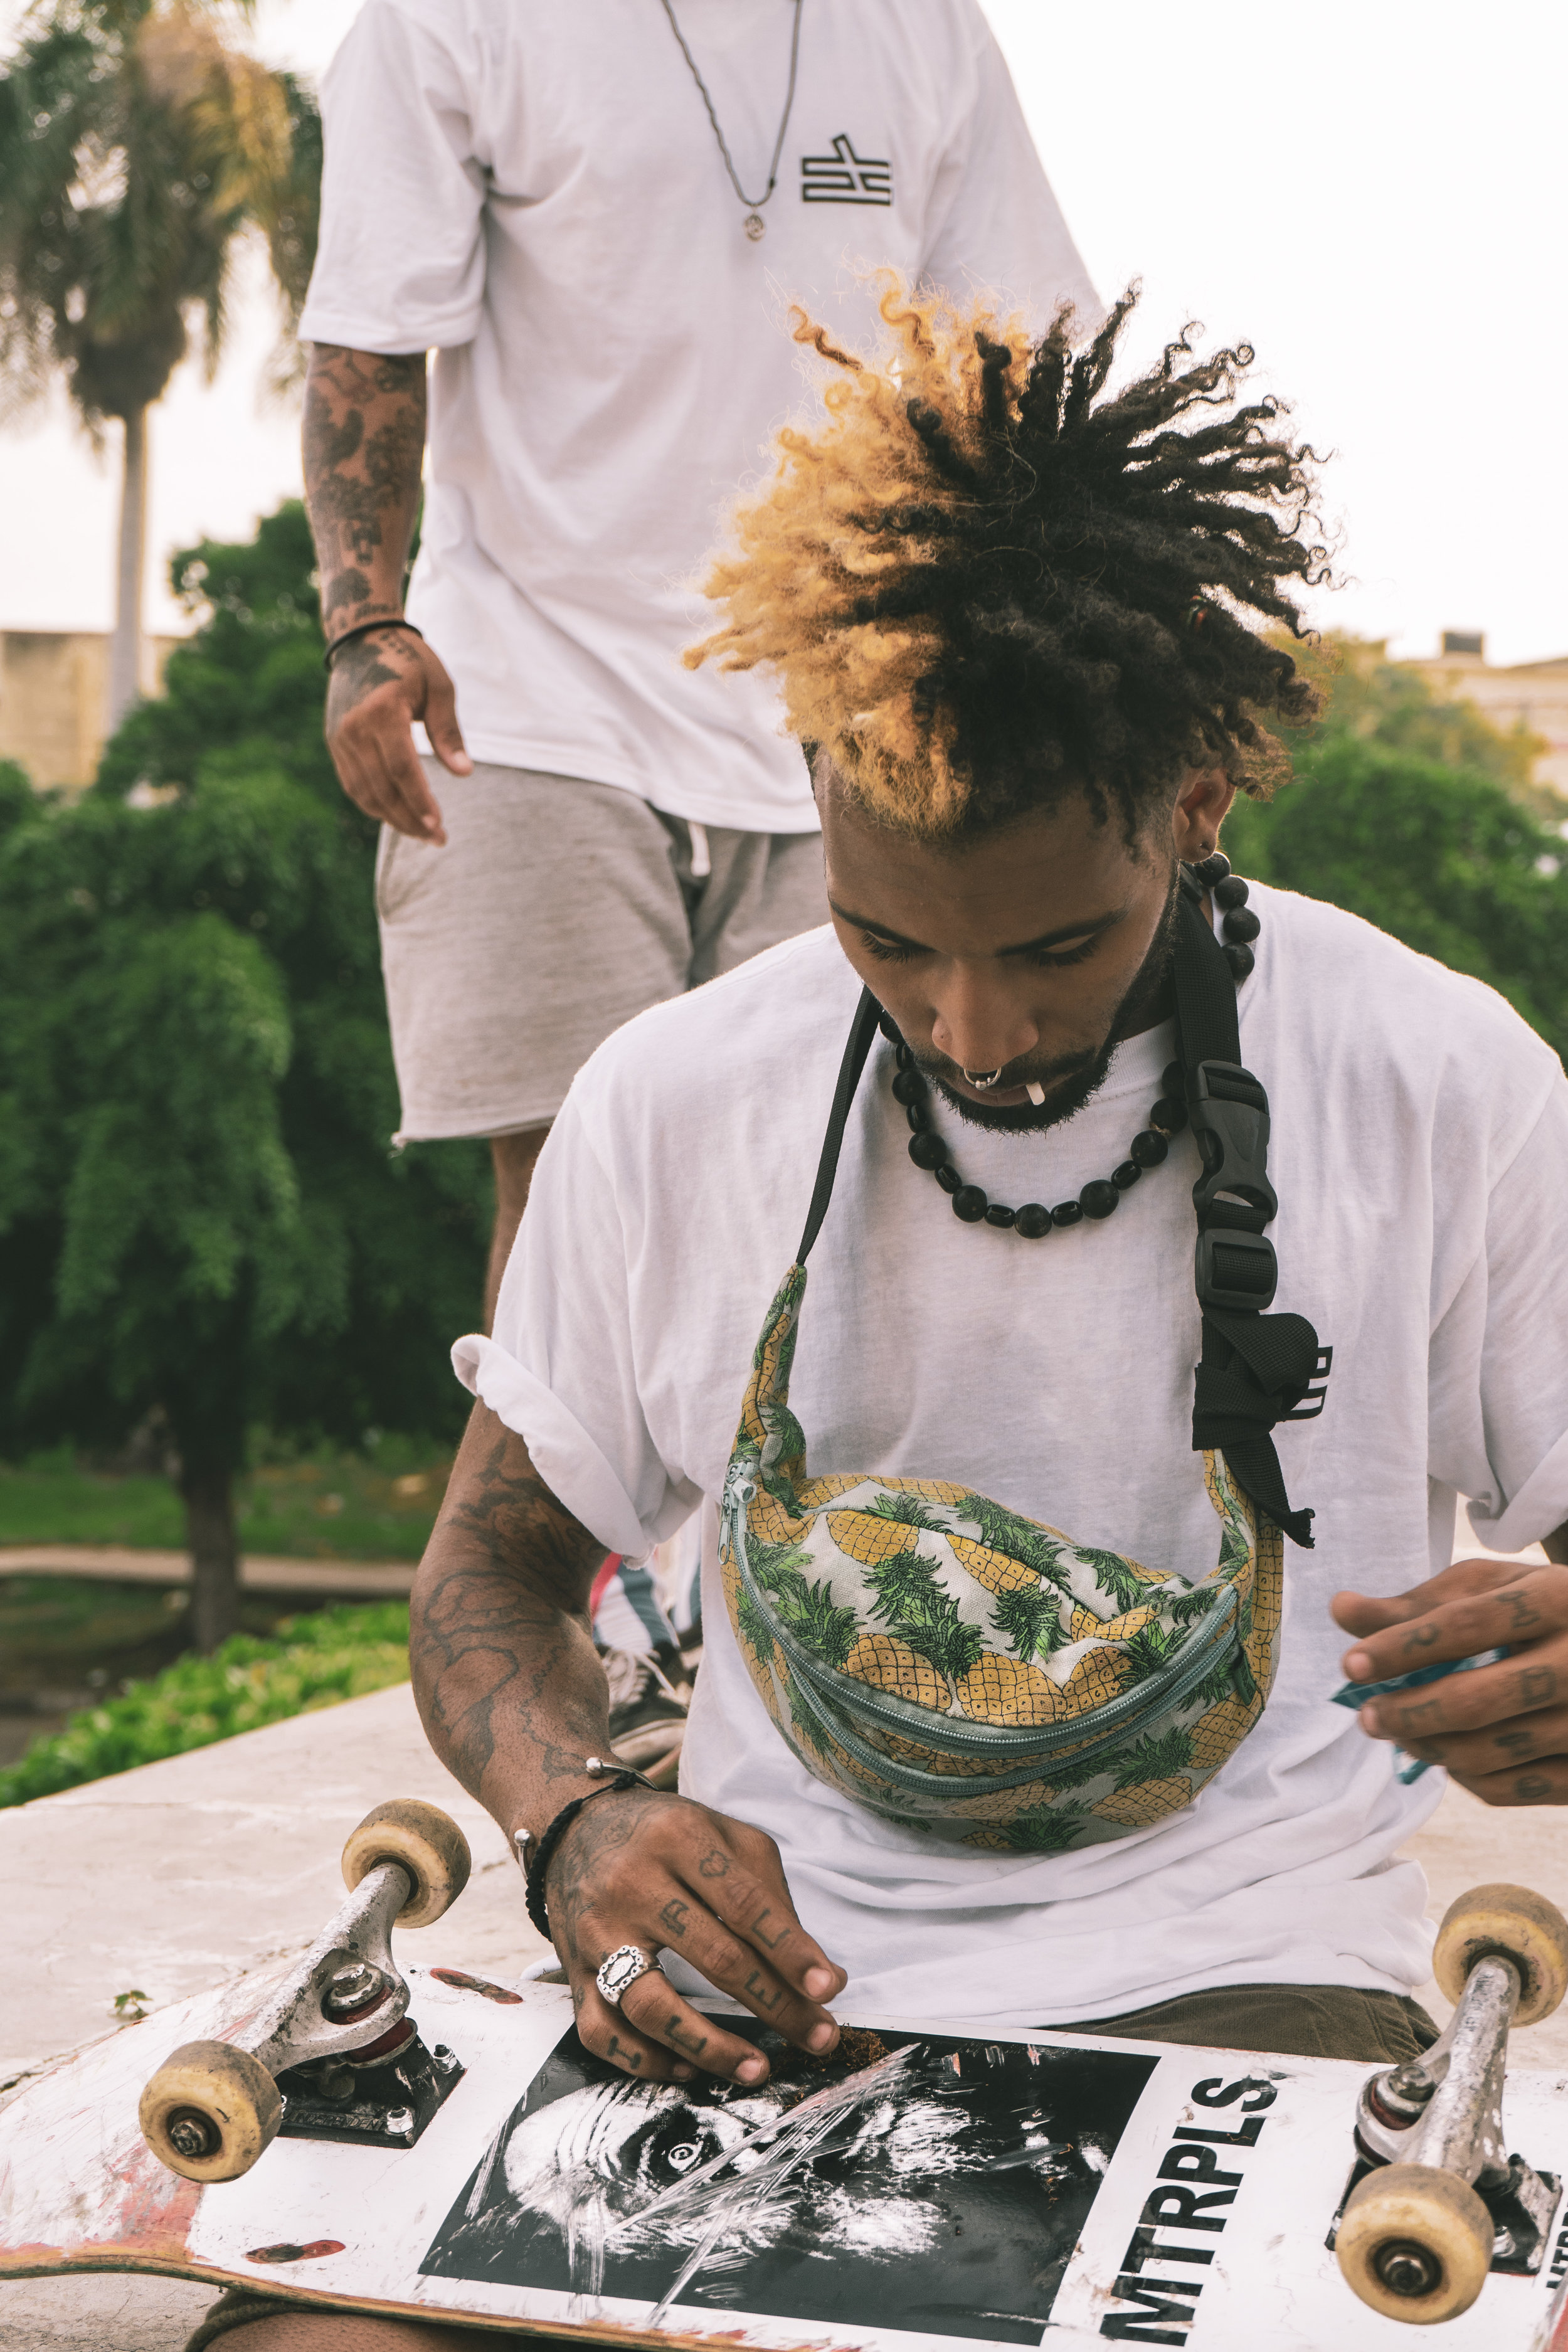 Our Story - Centro is a streetwear brand inspired and created by the street art and skater communities of Havana, Cuba.